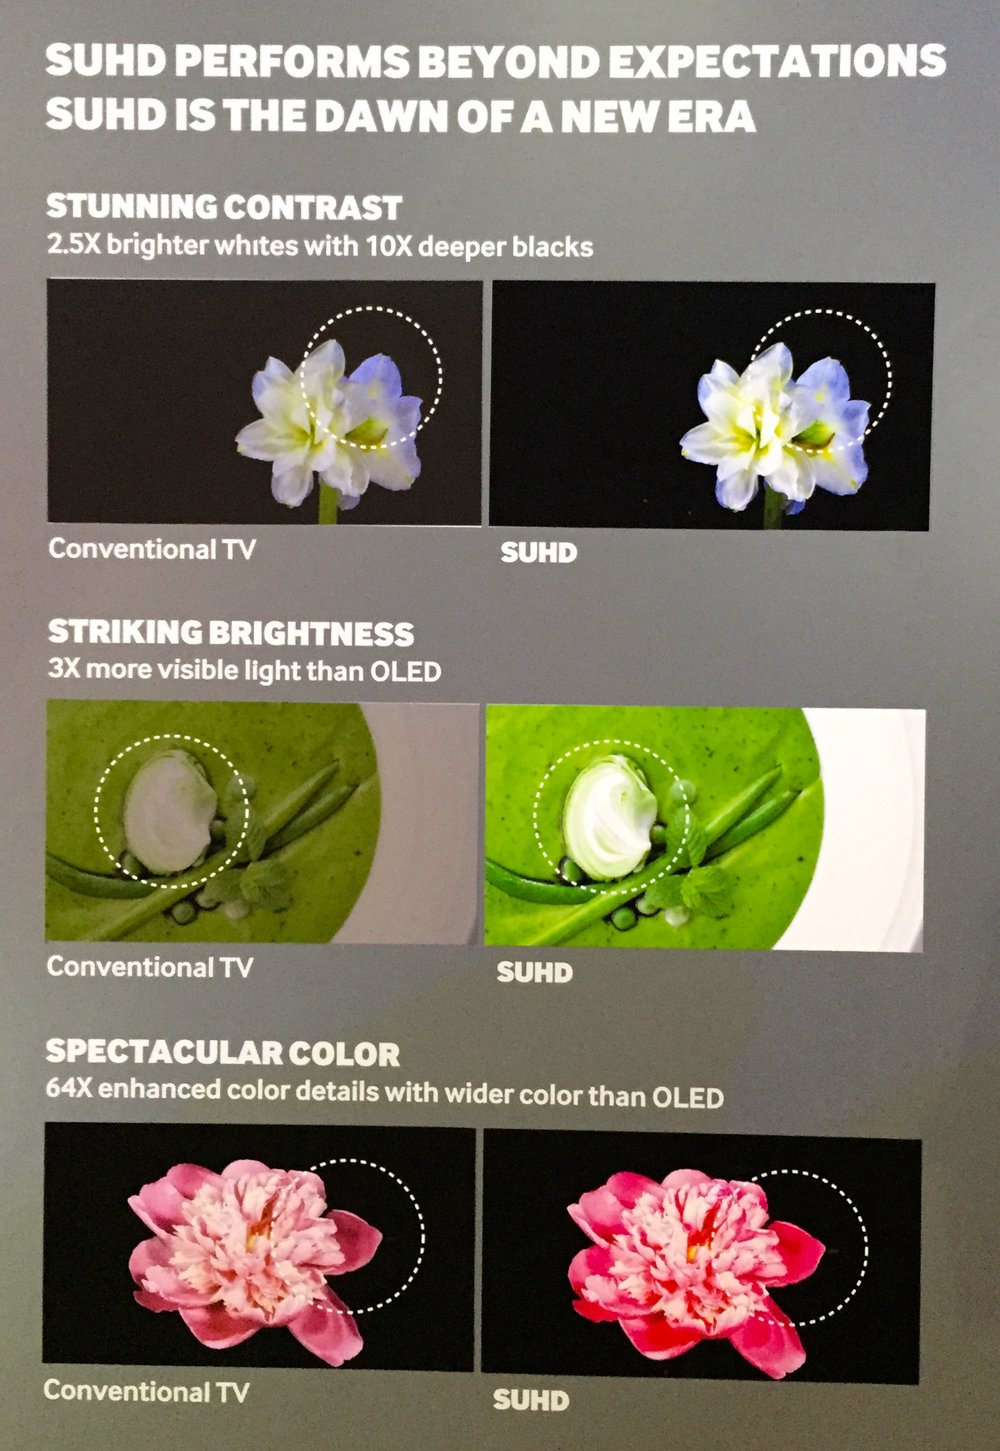 Samsung highlights the brightness, contrast and color benefits of the Quantum Dot technology in their SUHD TVs at CES 2015